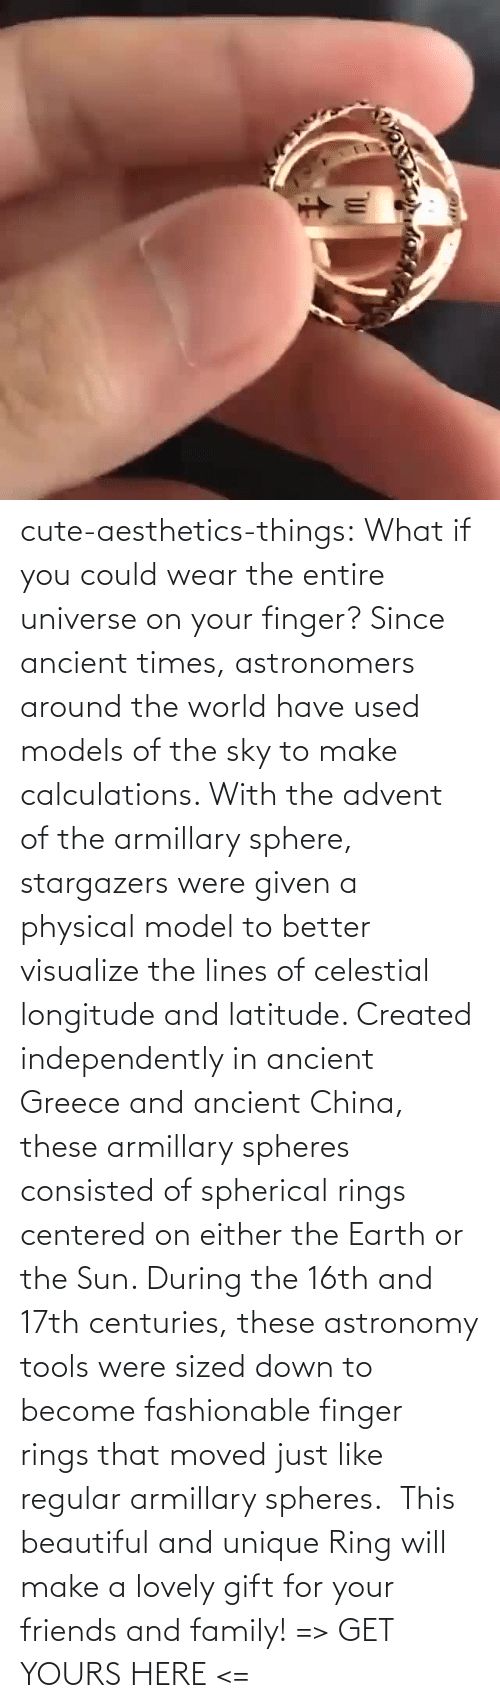 Down To: cute-aesthetics-things: What if you could wear the entire universe on your finger? Since ancient times, astronomers around the world have used models of the sky to make calculations. With the advent of the armillary sphere, stargazers were given a physical model to better visualize the lines of celestial longitude and latitude. Created independently in ancient Greece and ancient China, these armillary spheres consisted of spherical rings centered on either the Earth or the Sun. During the 16th and 17th centuries, these astronomy tools were sized down to become fashionable finger rings that moved just like regular armillary spheres.  This beautiful and unique Ring will make a lovely gift for your friends and family! => GET YOURS HERE <=